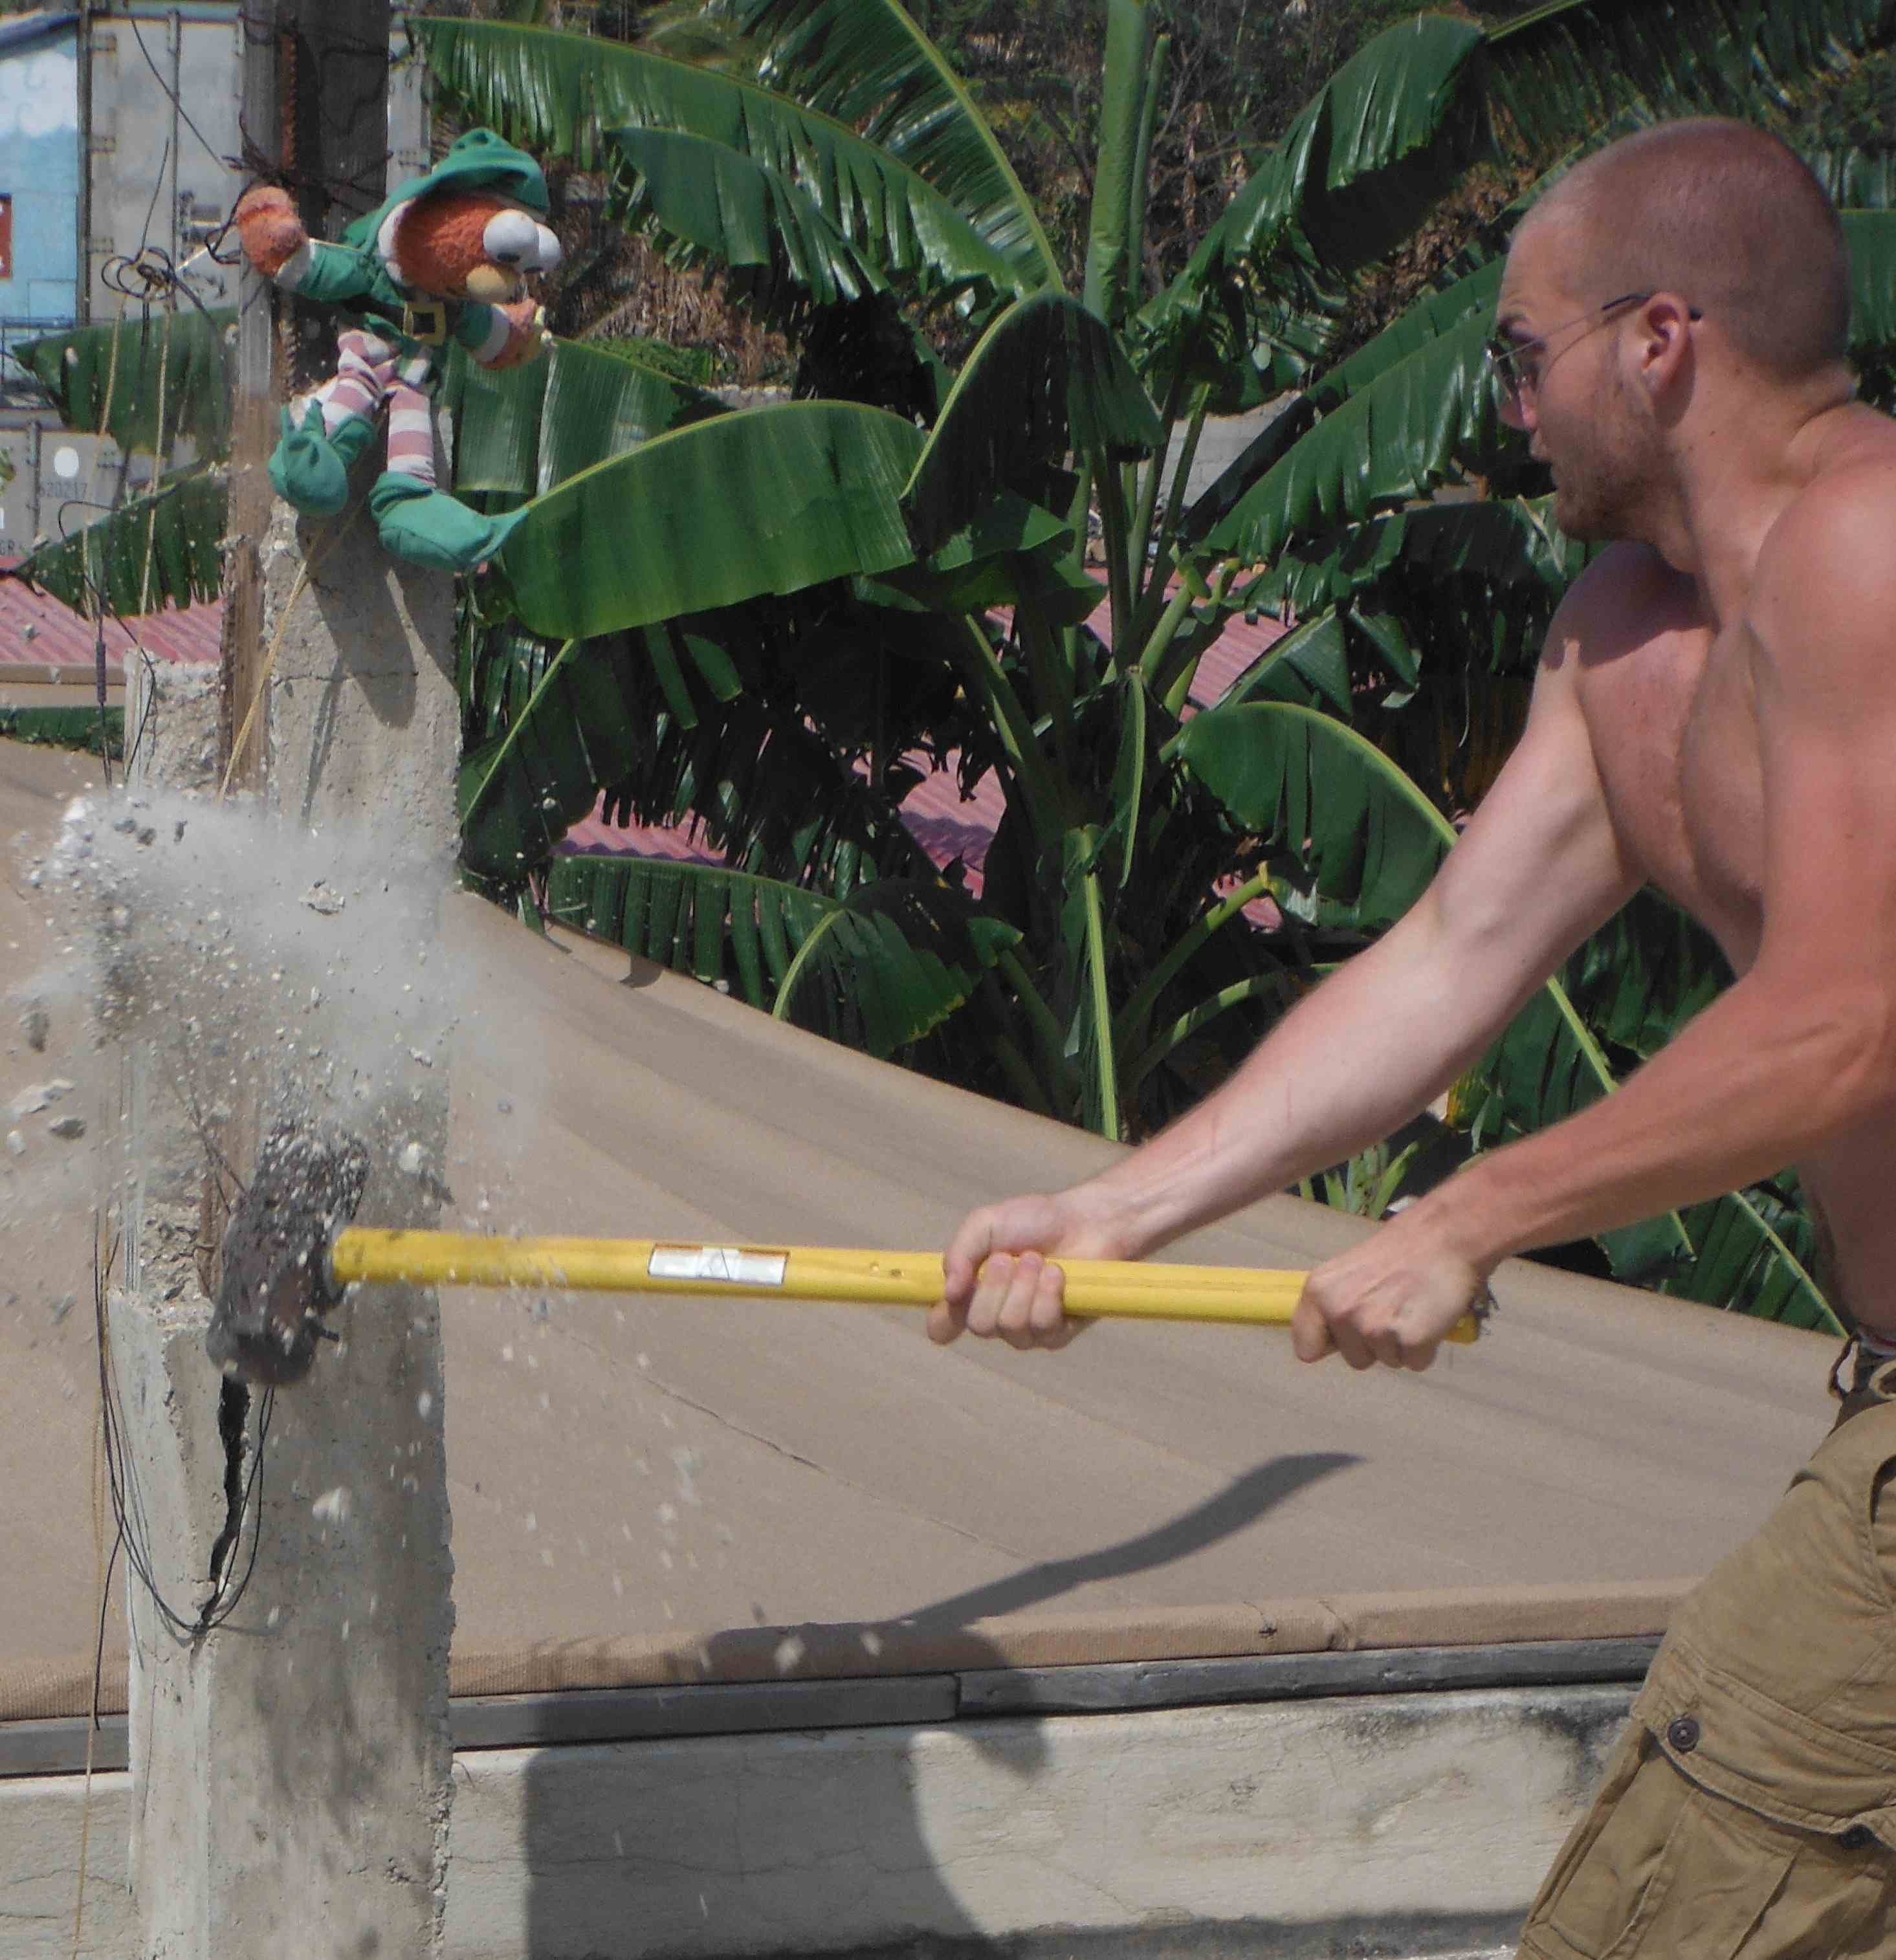 James smashes concrete like the hulk to build homes in Haiti